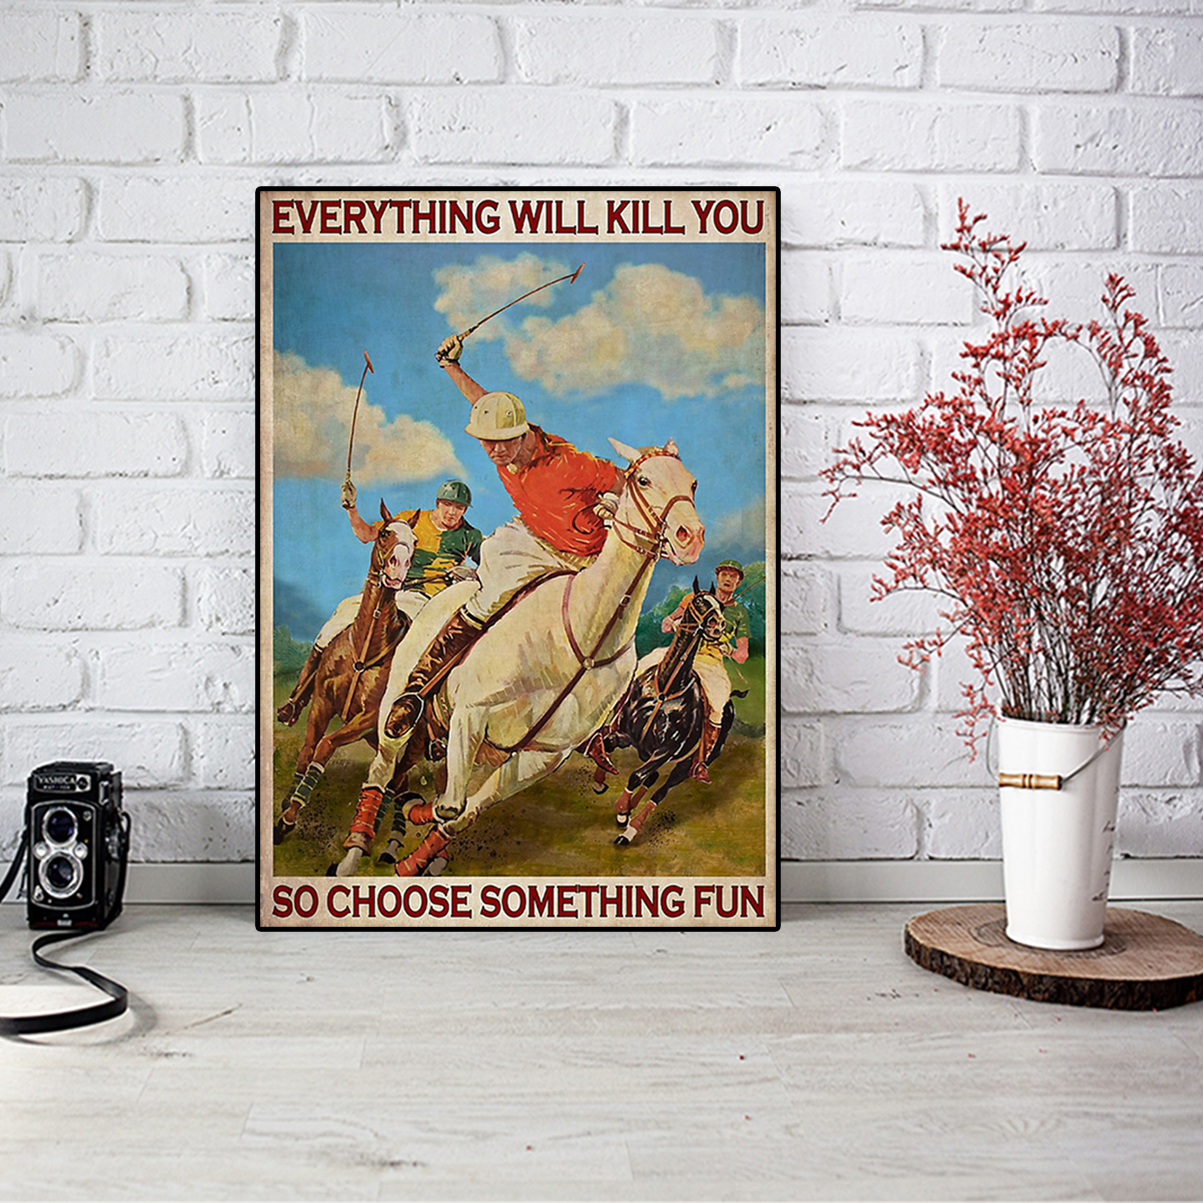 Polo everything will kill you so choose something fun poster A3